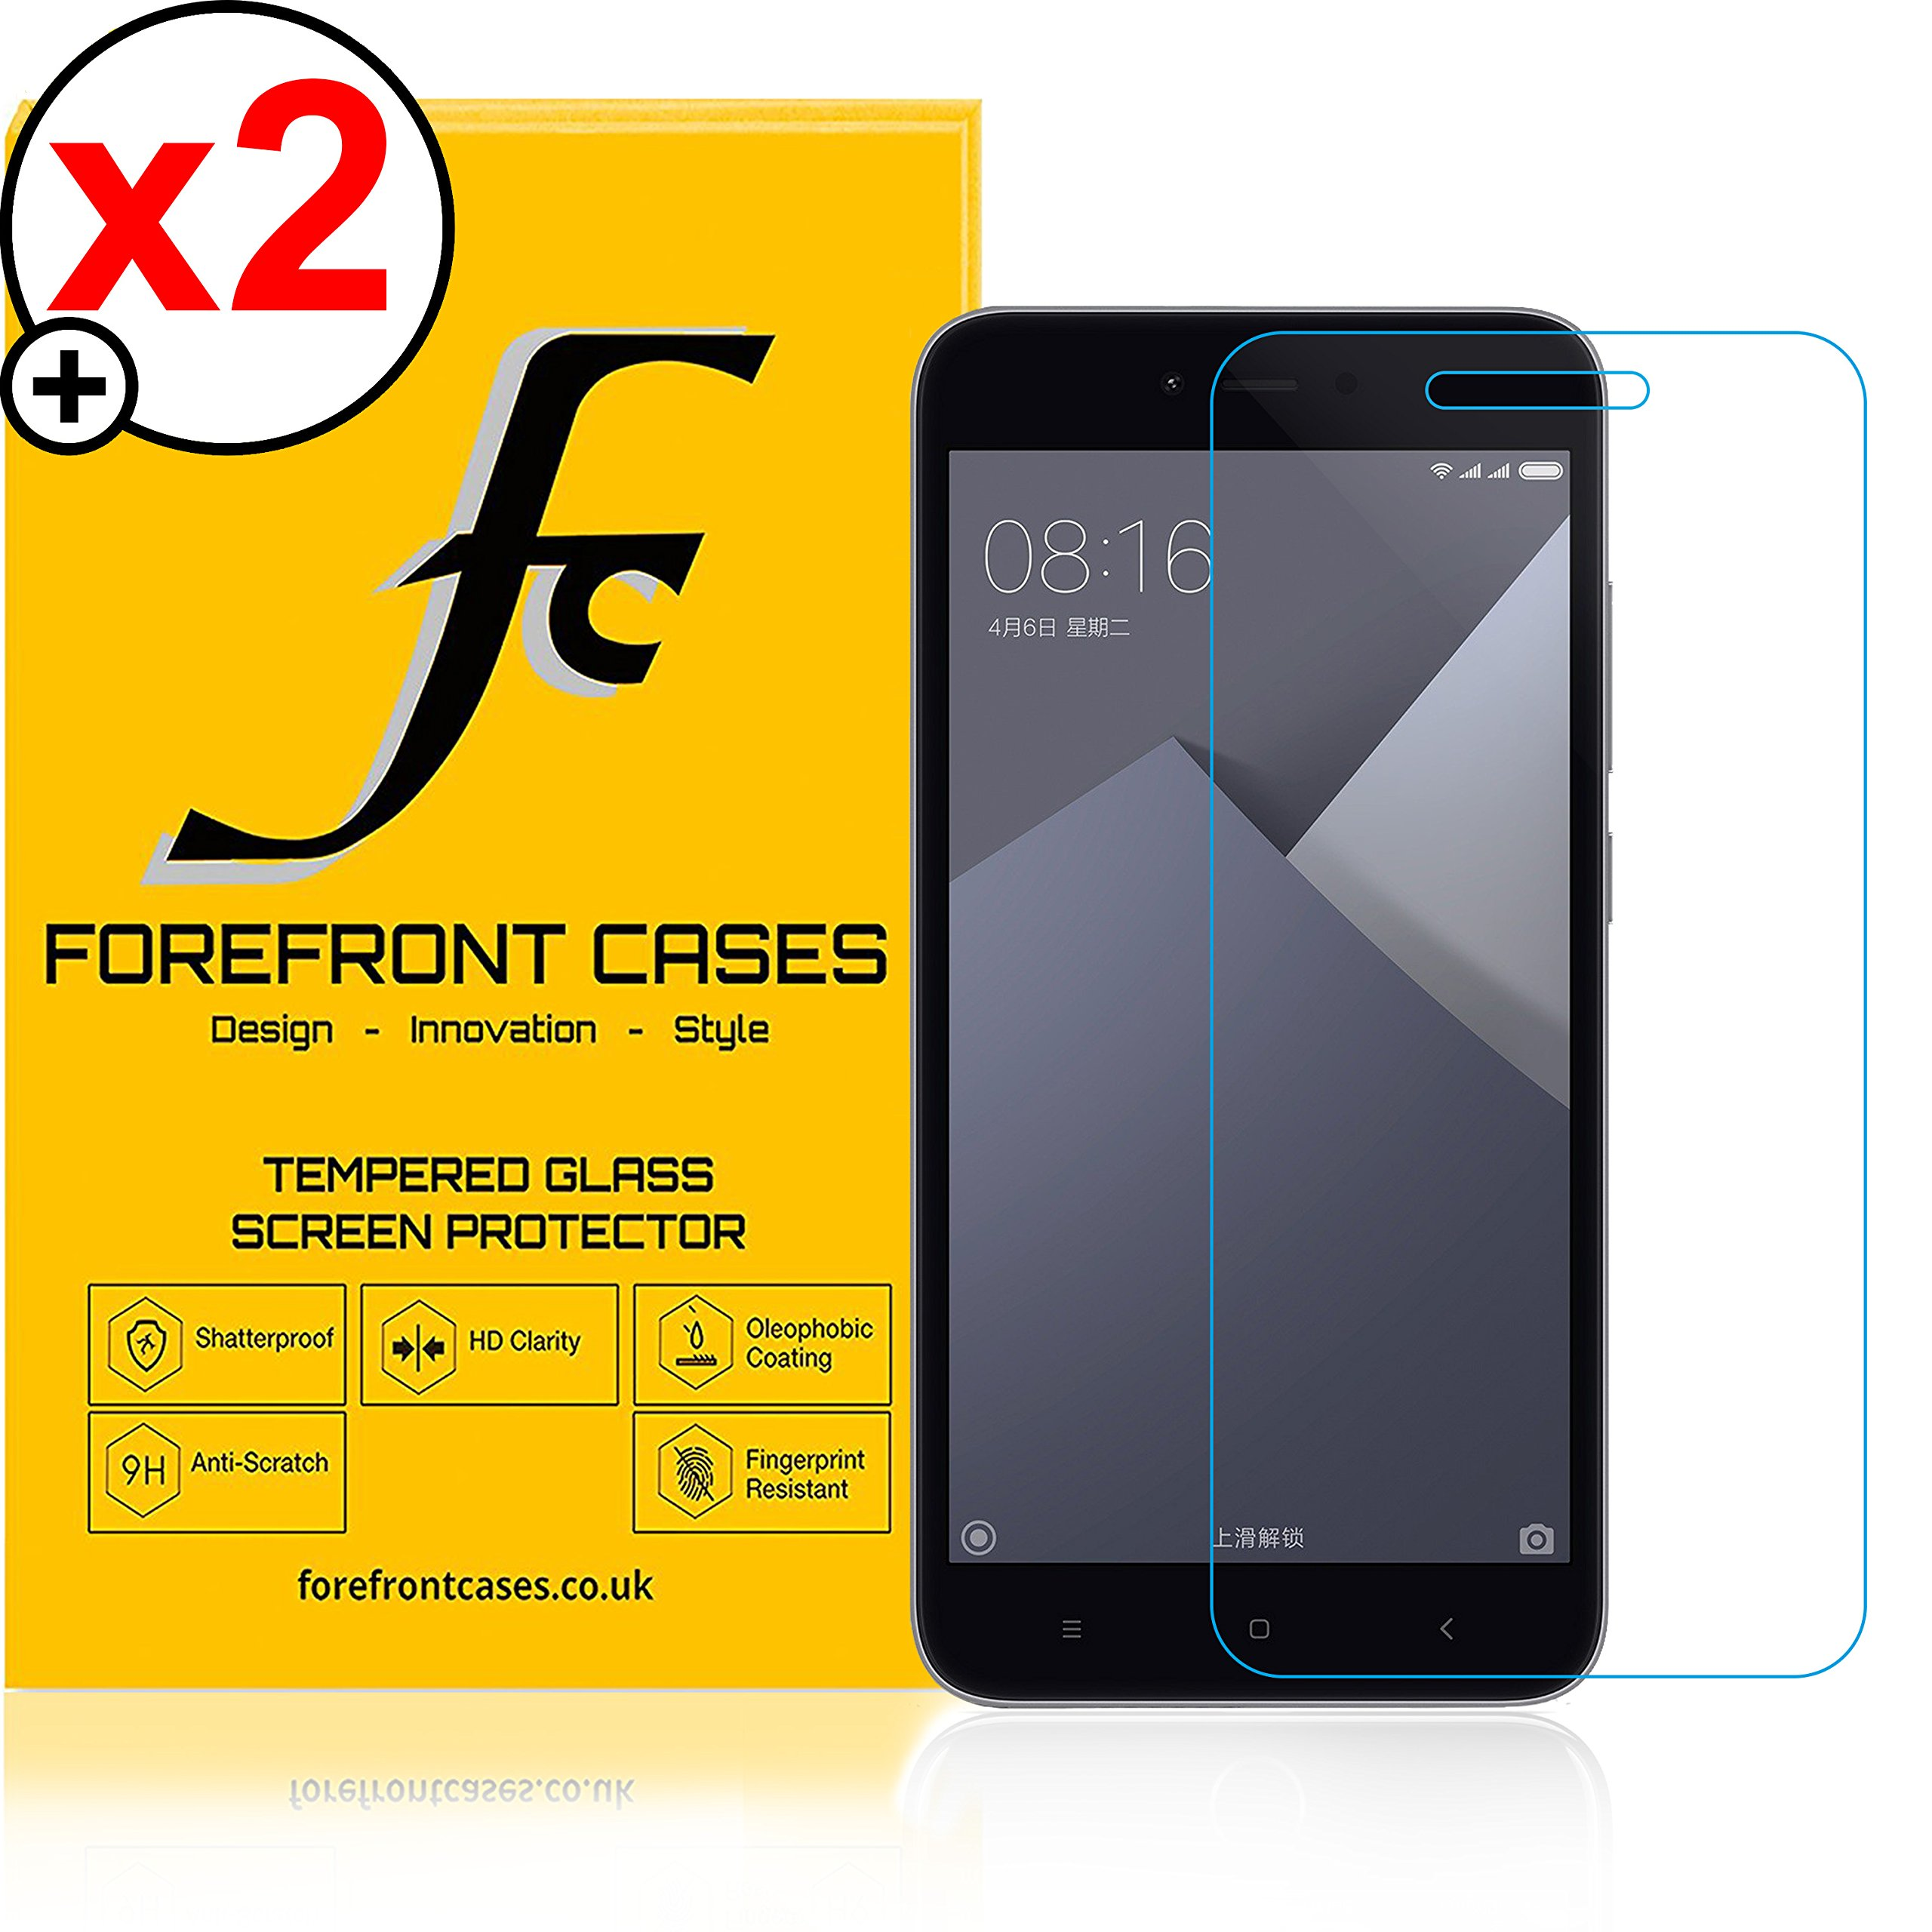 Forefront Cases Xiaomi Redmi Note 5a Hd Tempered Glass Screen Touchscreen Youre Viewing Protector Guard Pack Of 2 999 499 Inc